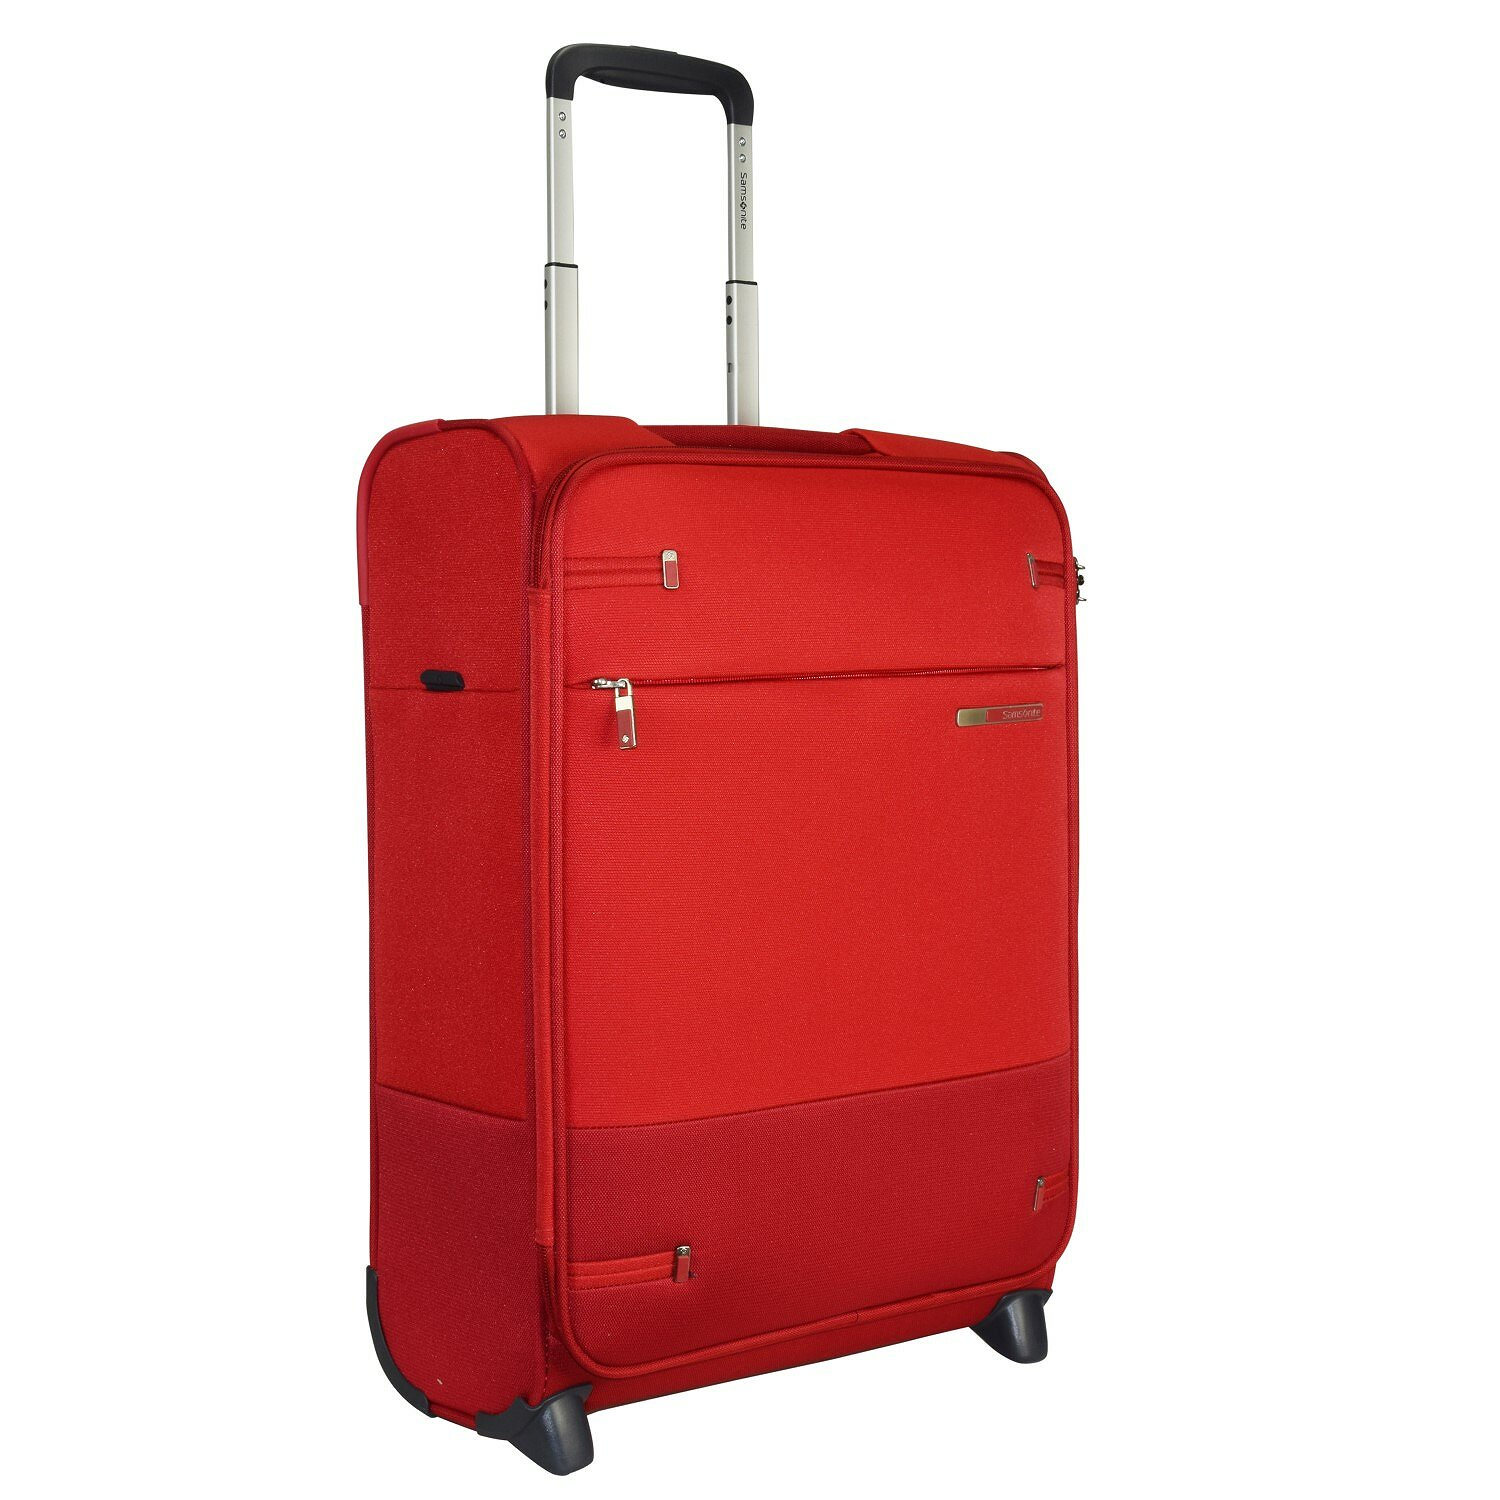 samsonite base boost upright 2 rollen kabinentrolley 55 cm red bei premium mall. Black Bedroom Furniture Sets. Home Design Ideas